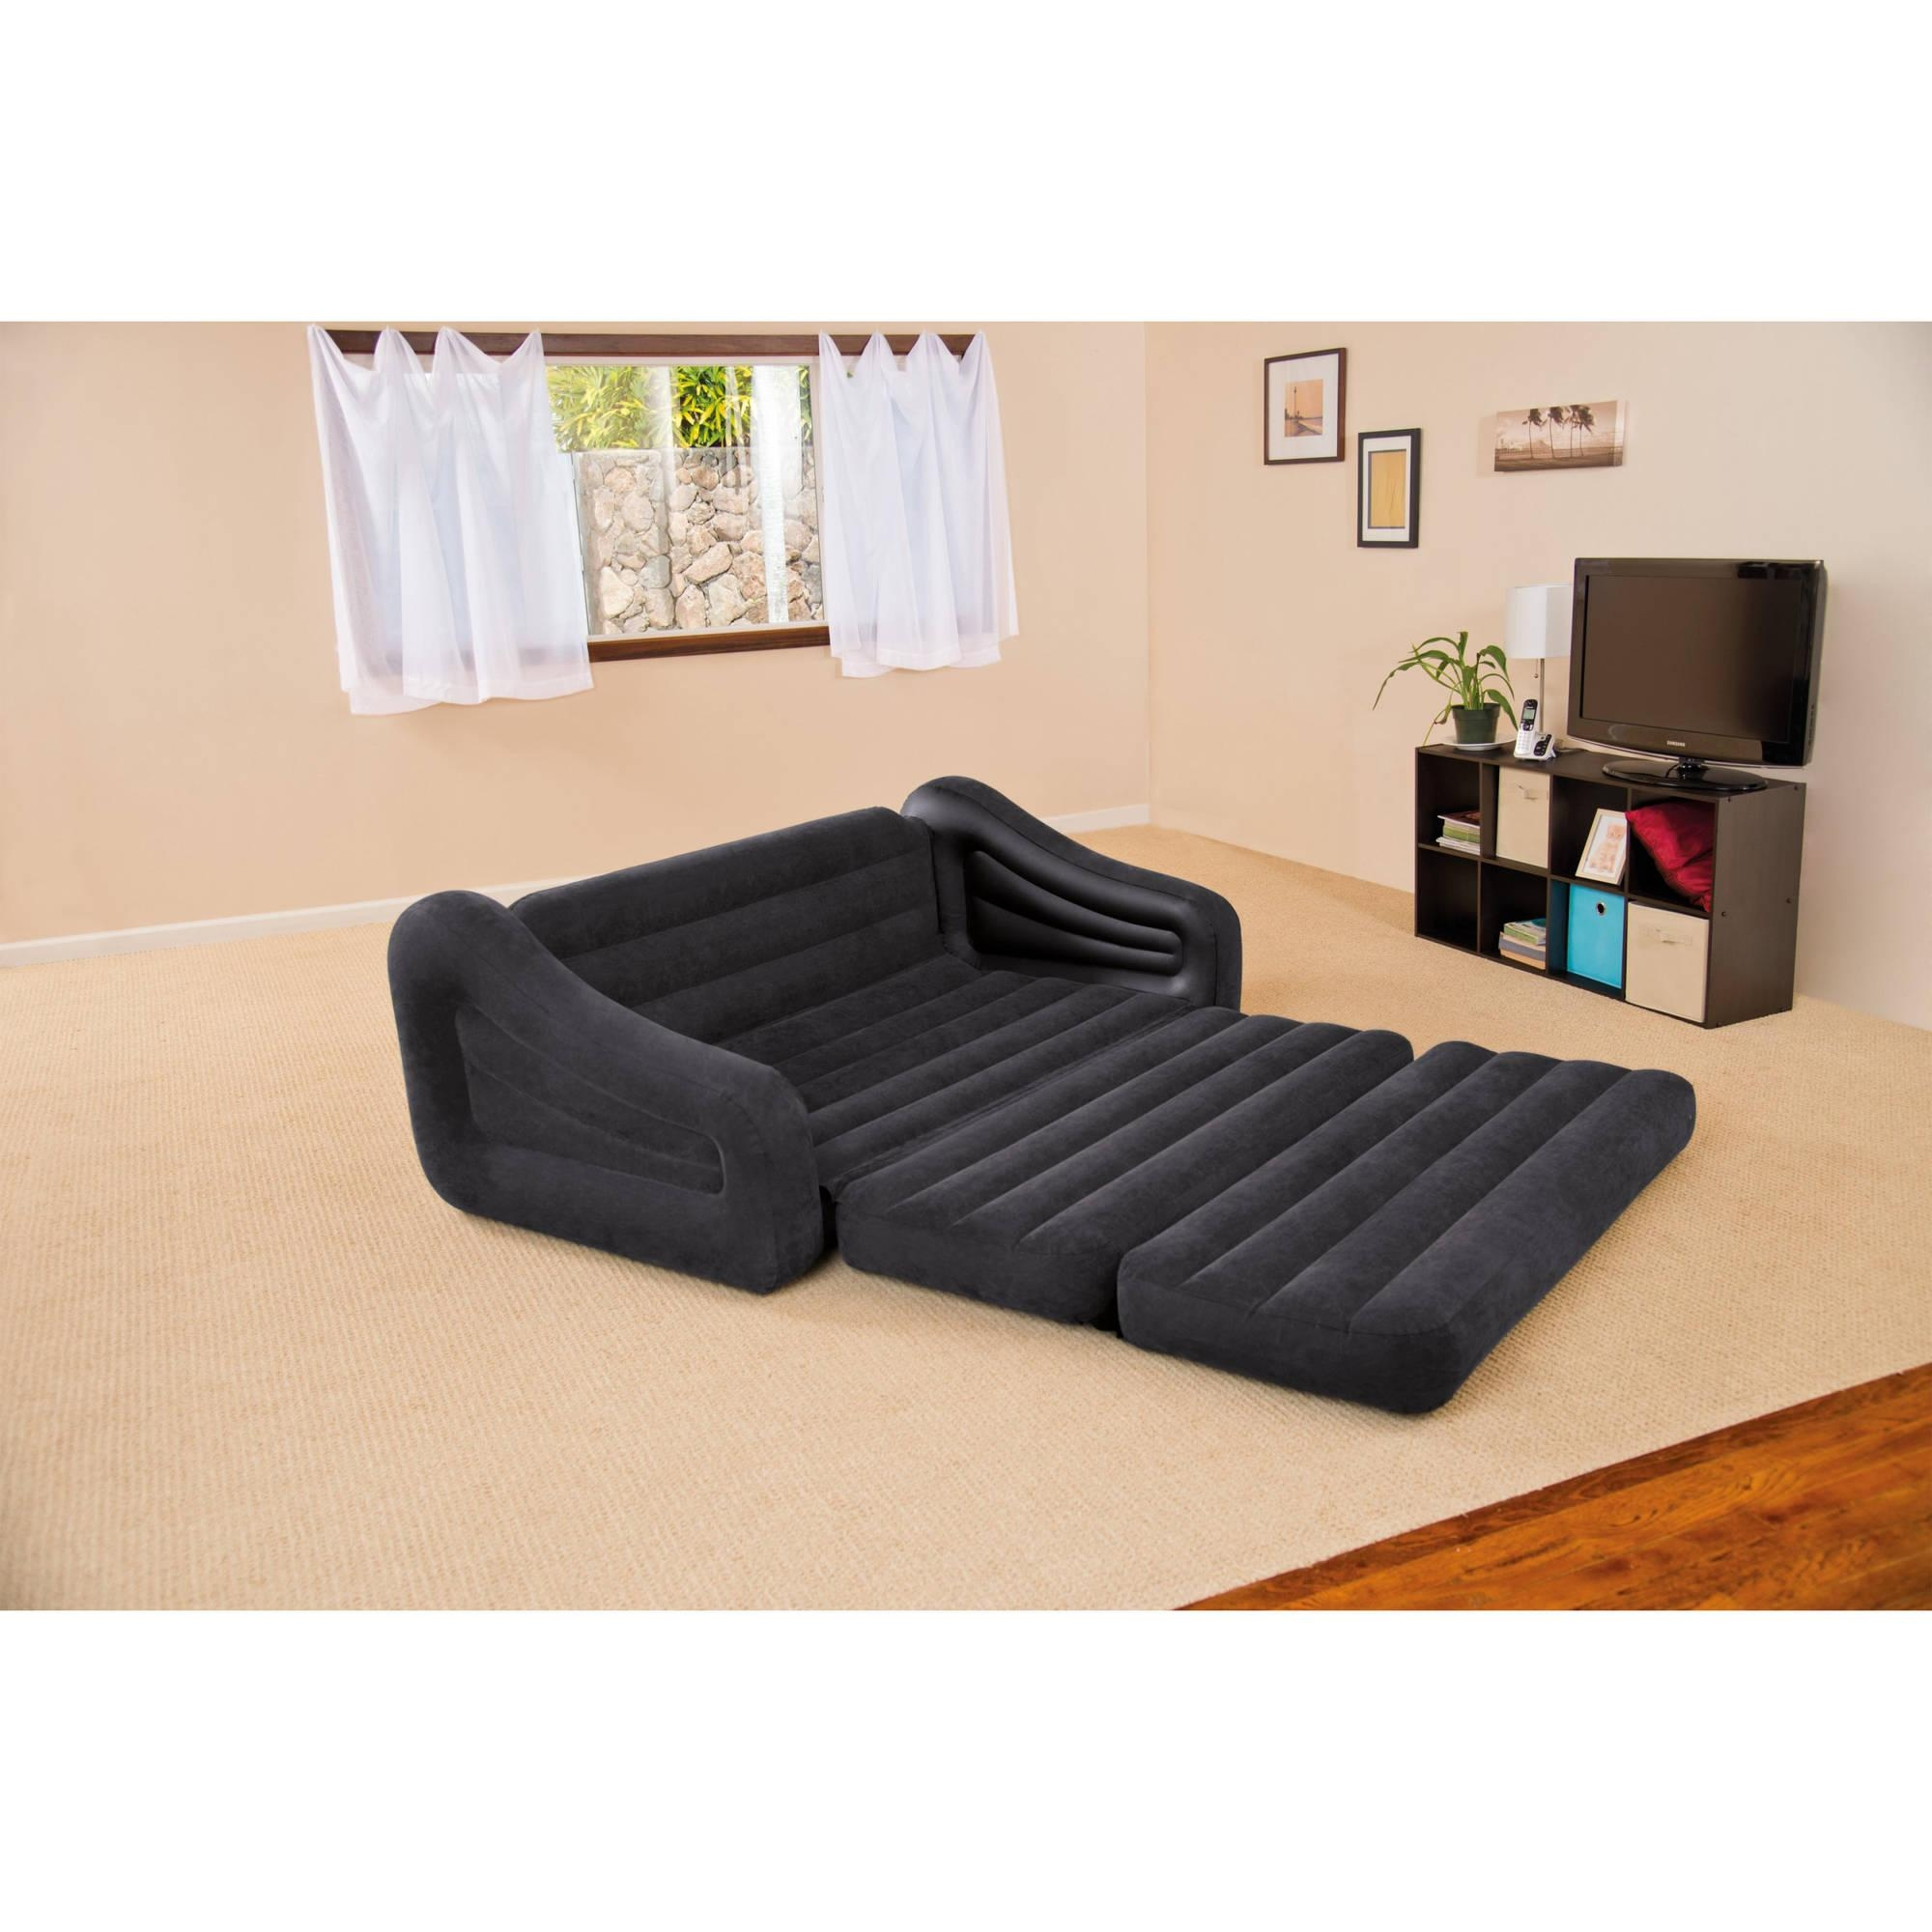 Intex Queen Inflatable Pull Out Sofa Bed – Walmart For Inflatable Pull Out Sofas (Image 14 of 20)